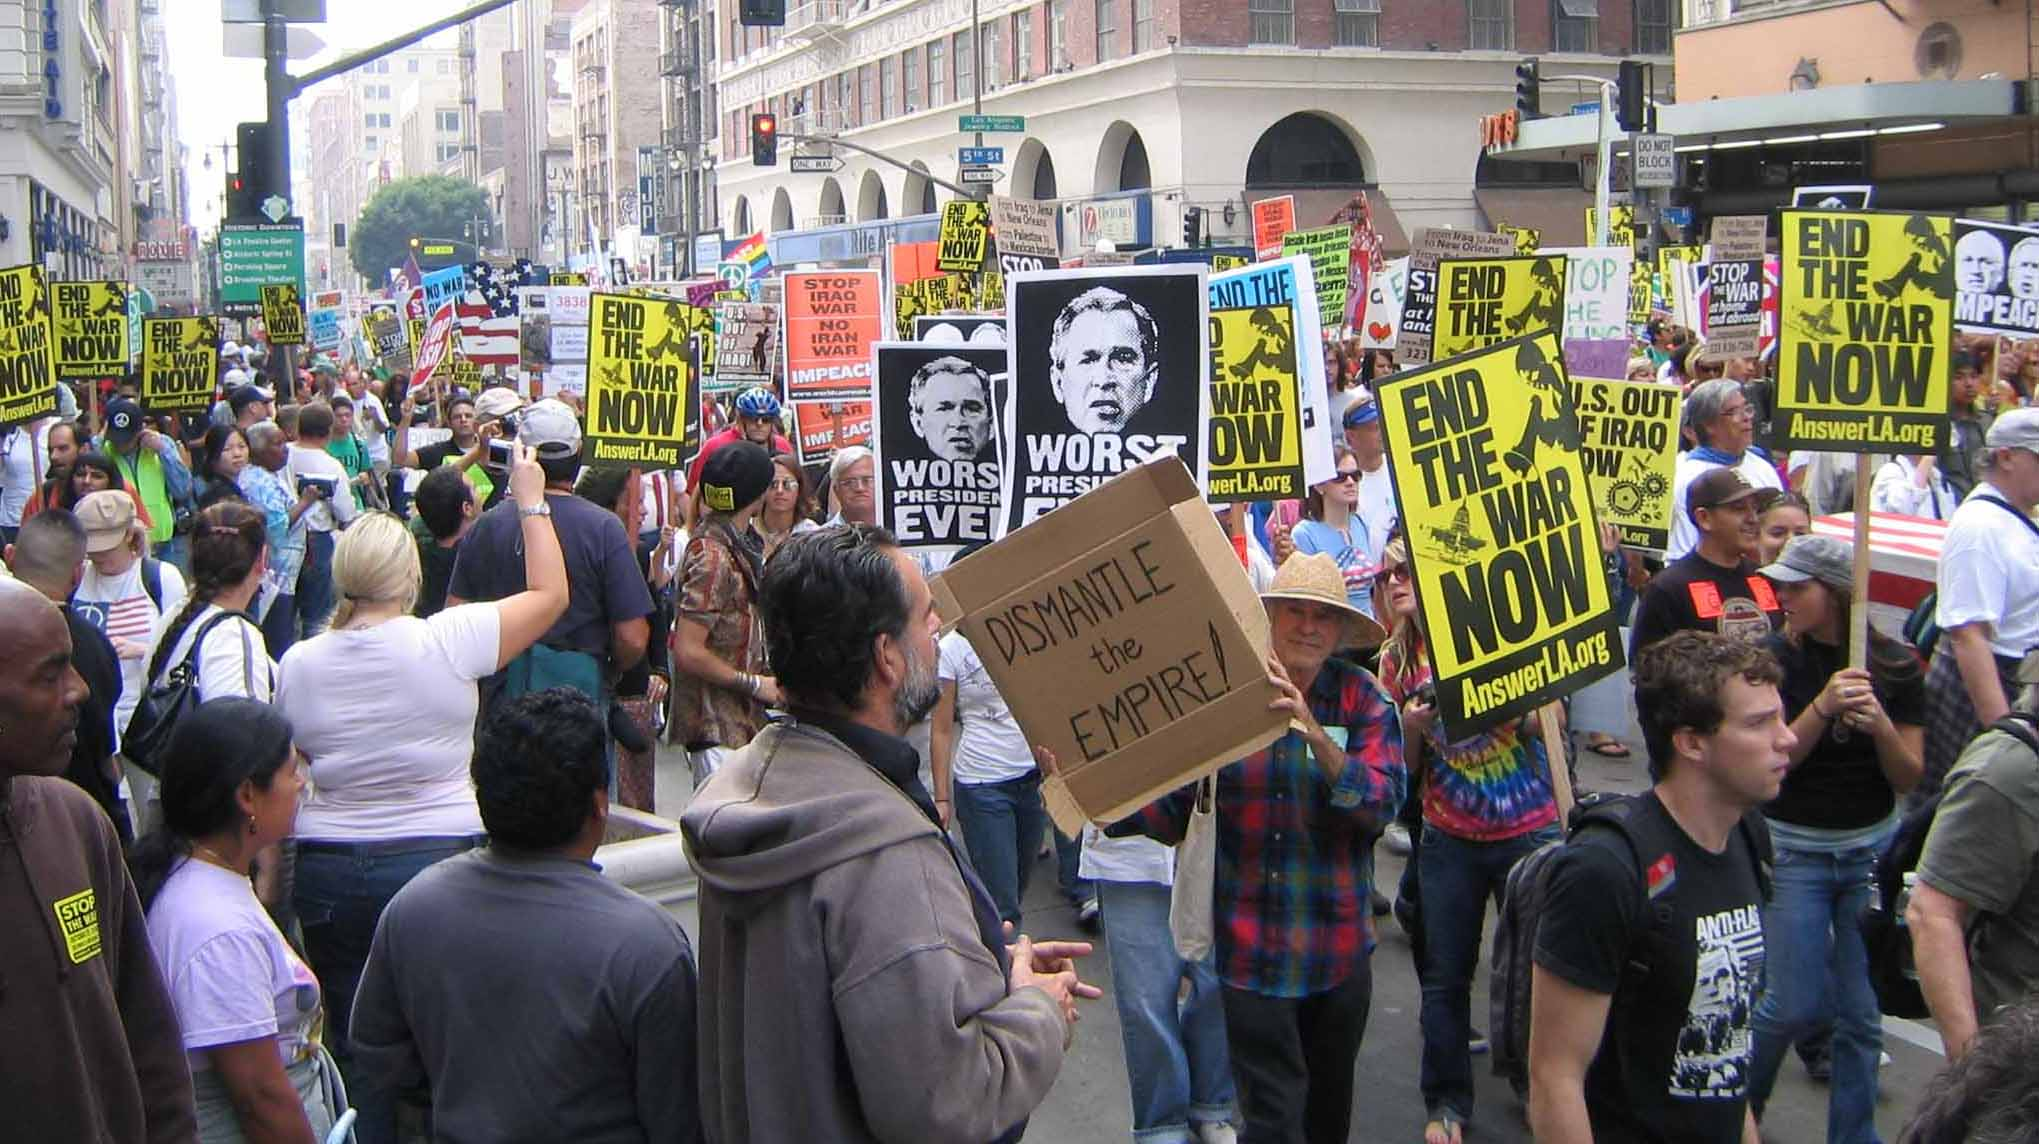 voices of protest essays We provide excellent essay writing service 24/7 enjoy proficient essay writing and custom writing services provided by professional academic writers.